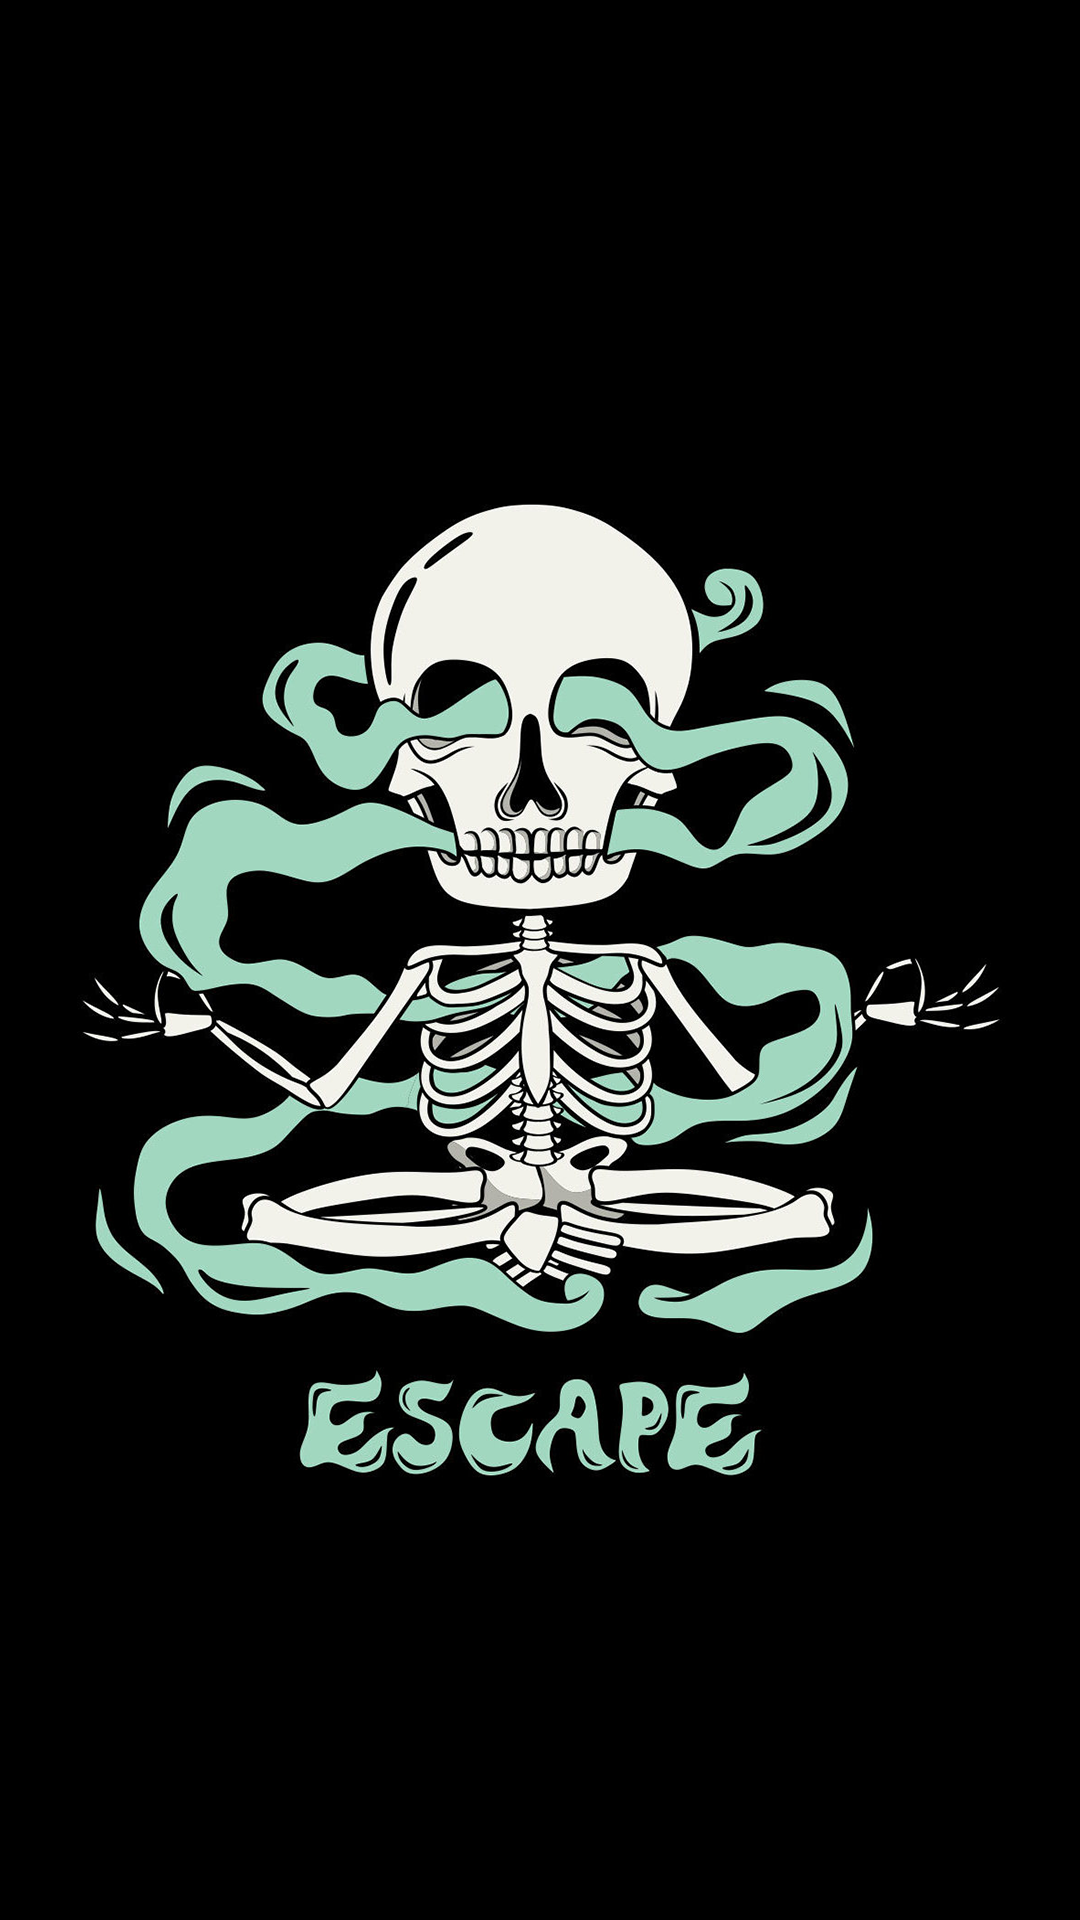 Escape Tap to see more Dope wallpaper! mobile9